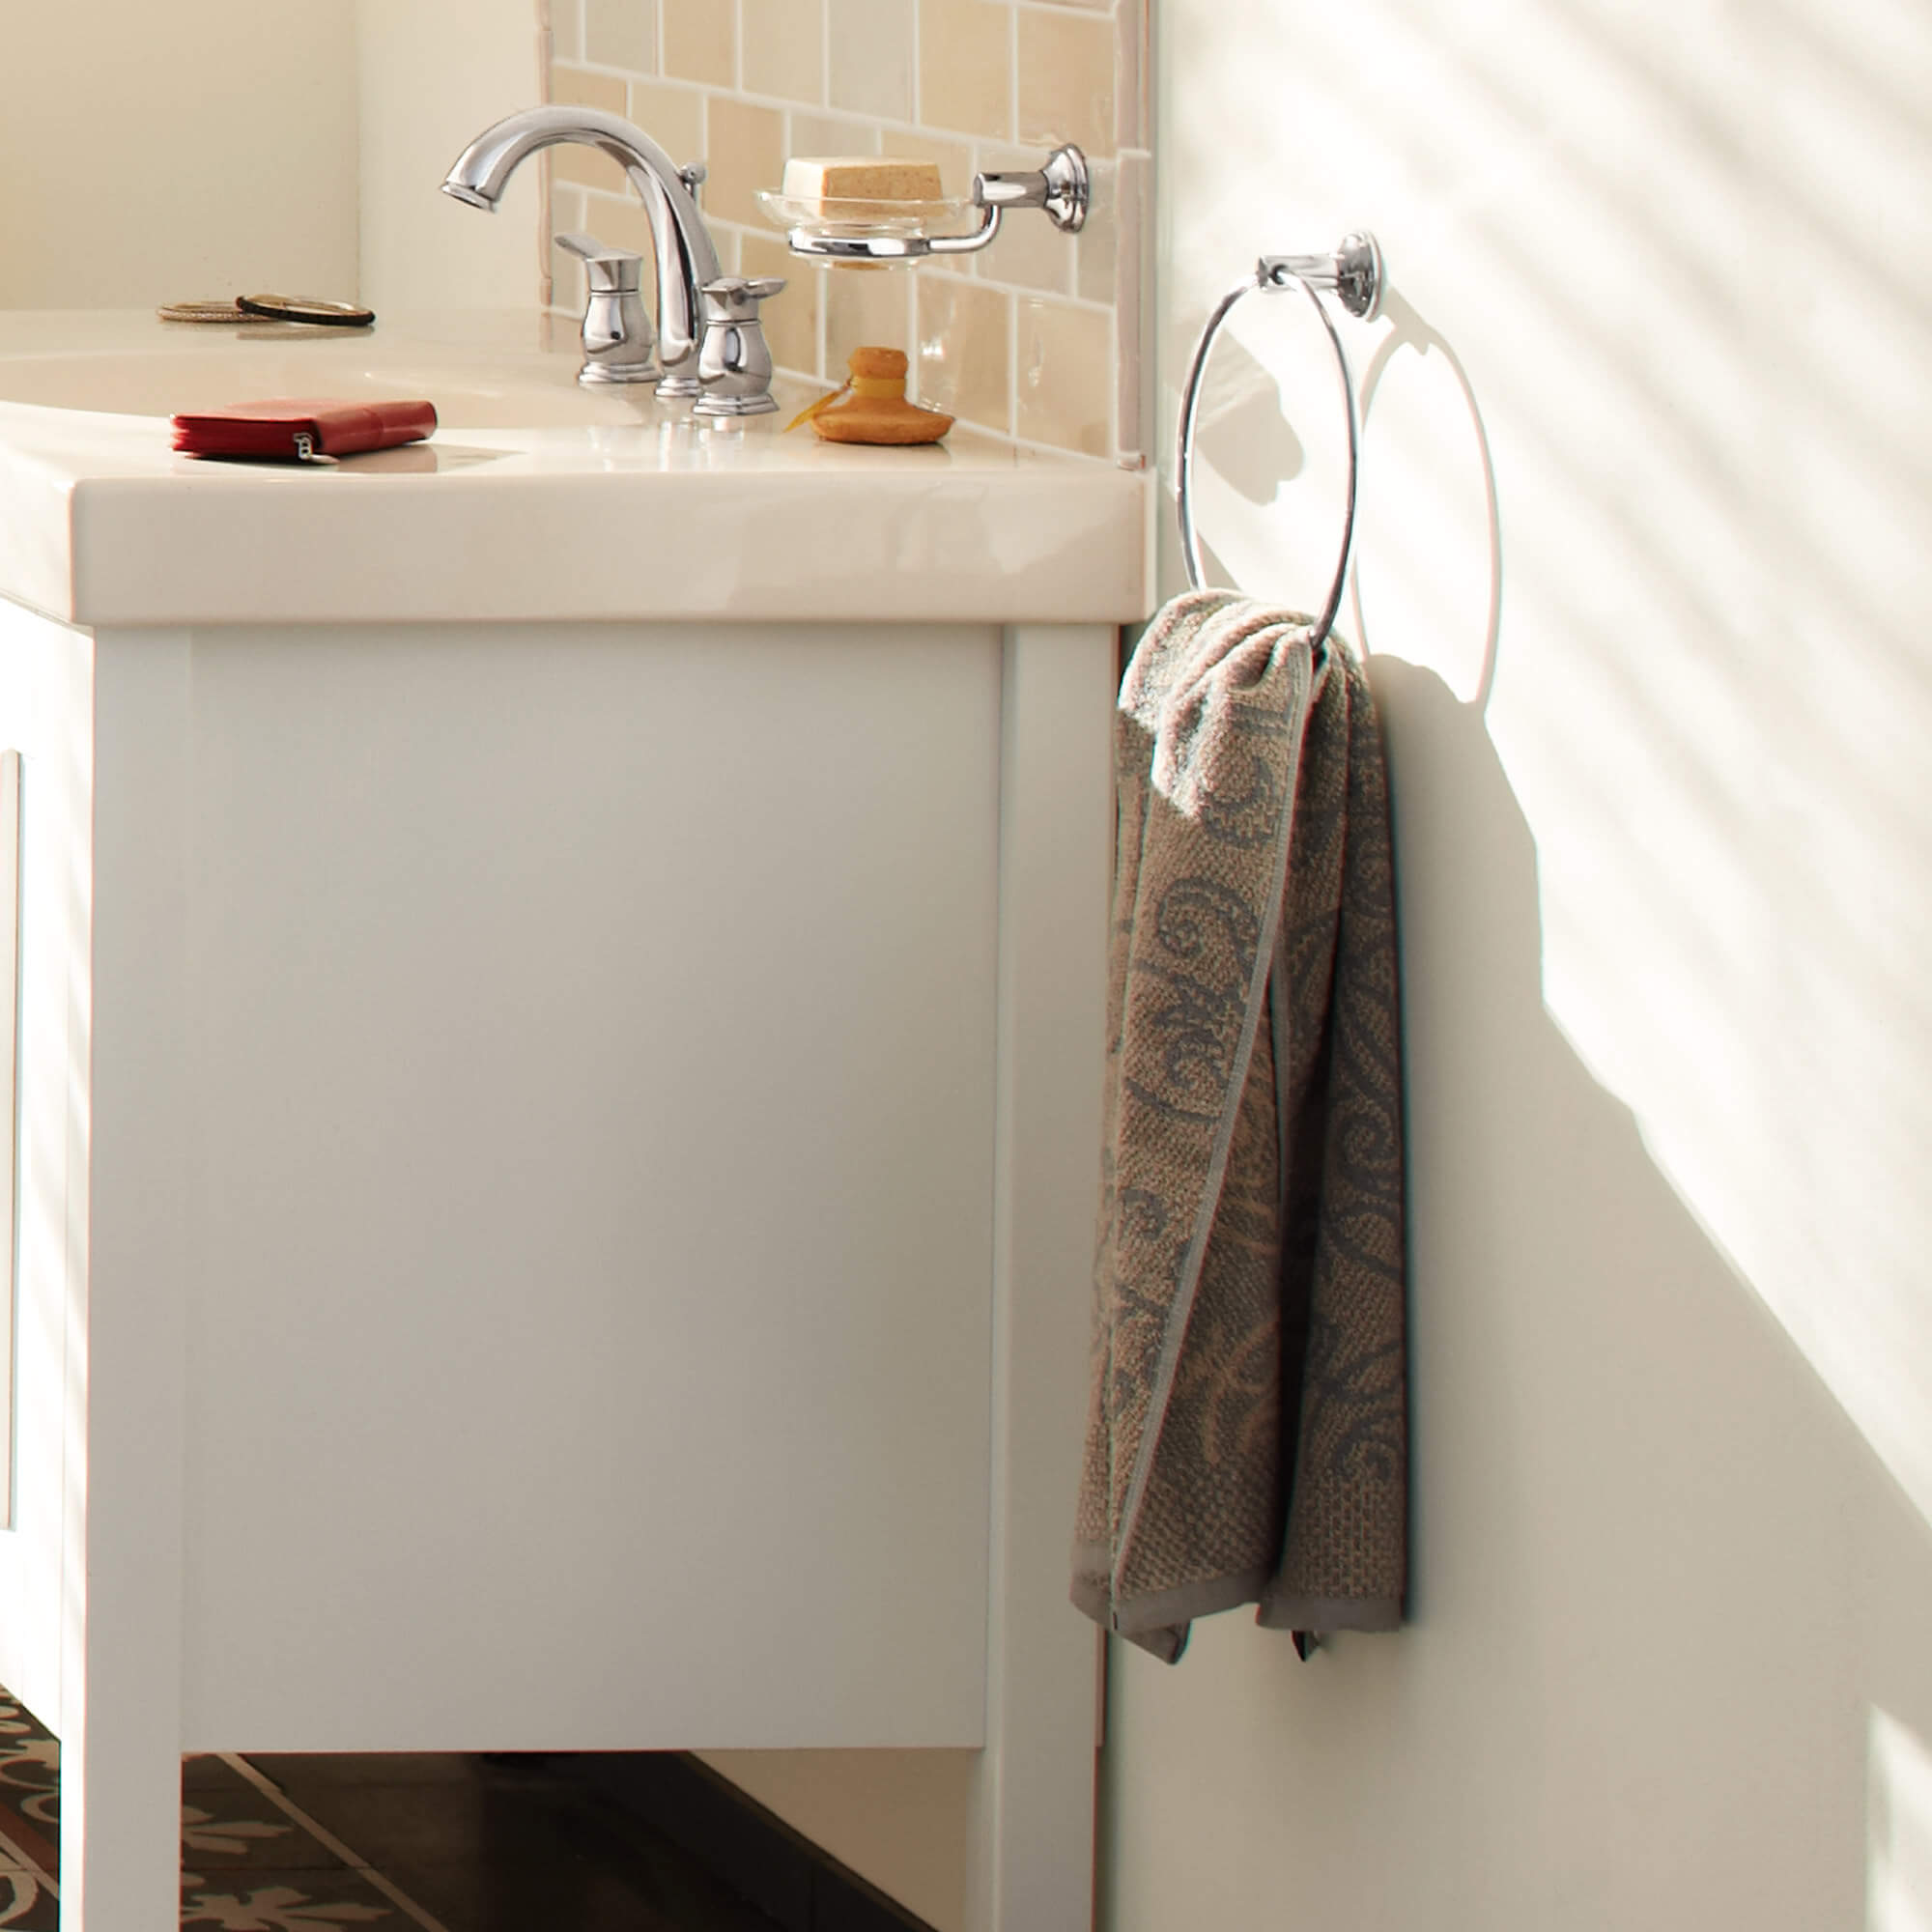 Essentials Authentic accessory towel ring next to a bathroom sink cabinet.